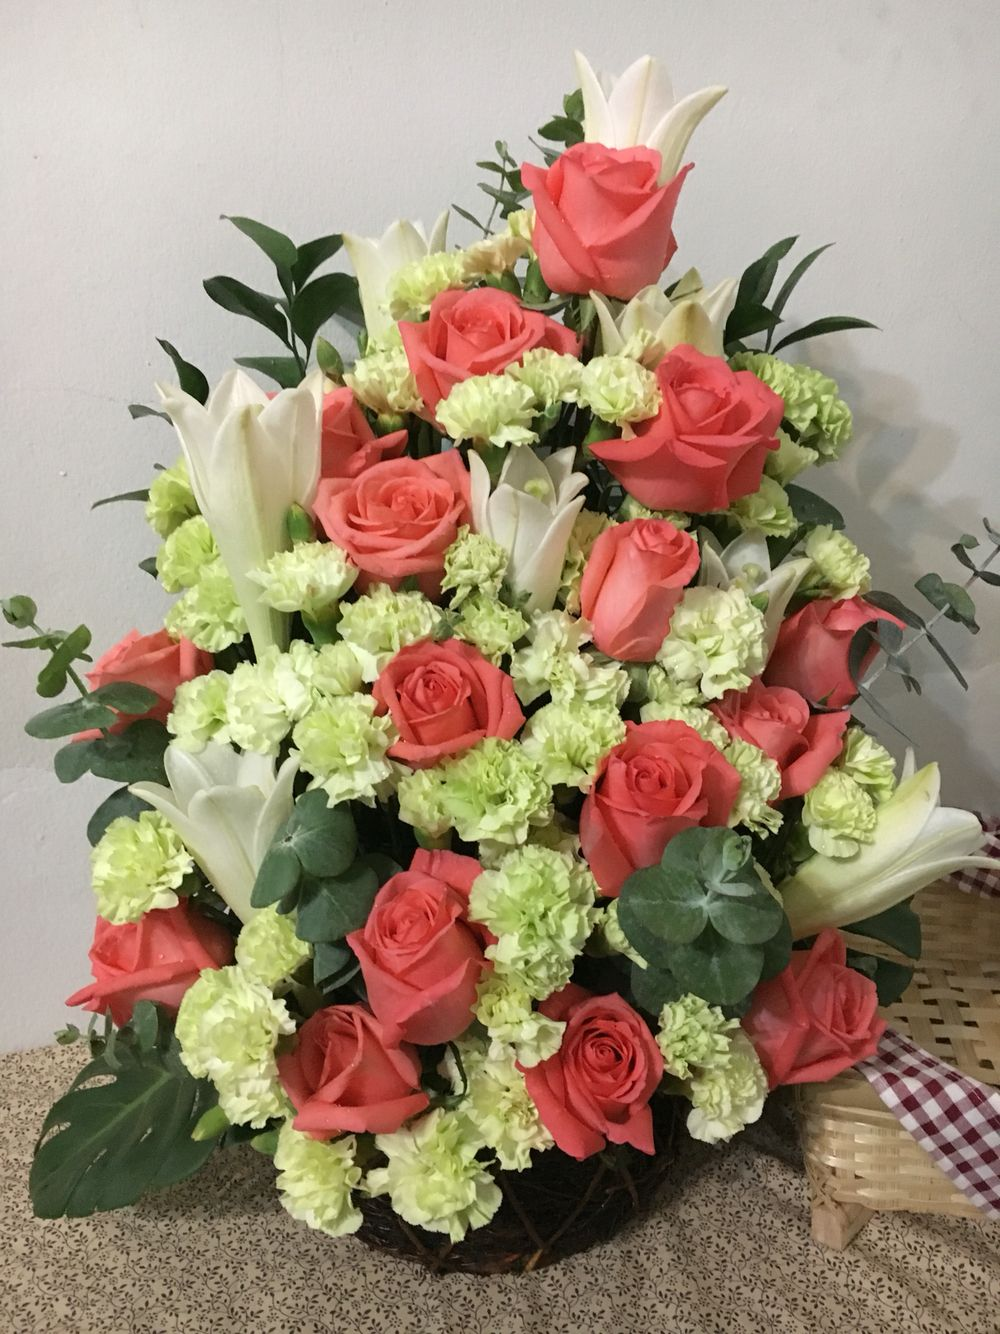 35th years wedding anniversary | Flowers arrangment | Pinterest ...